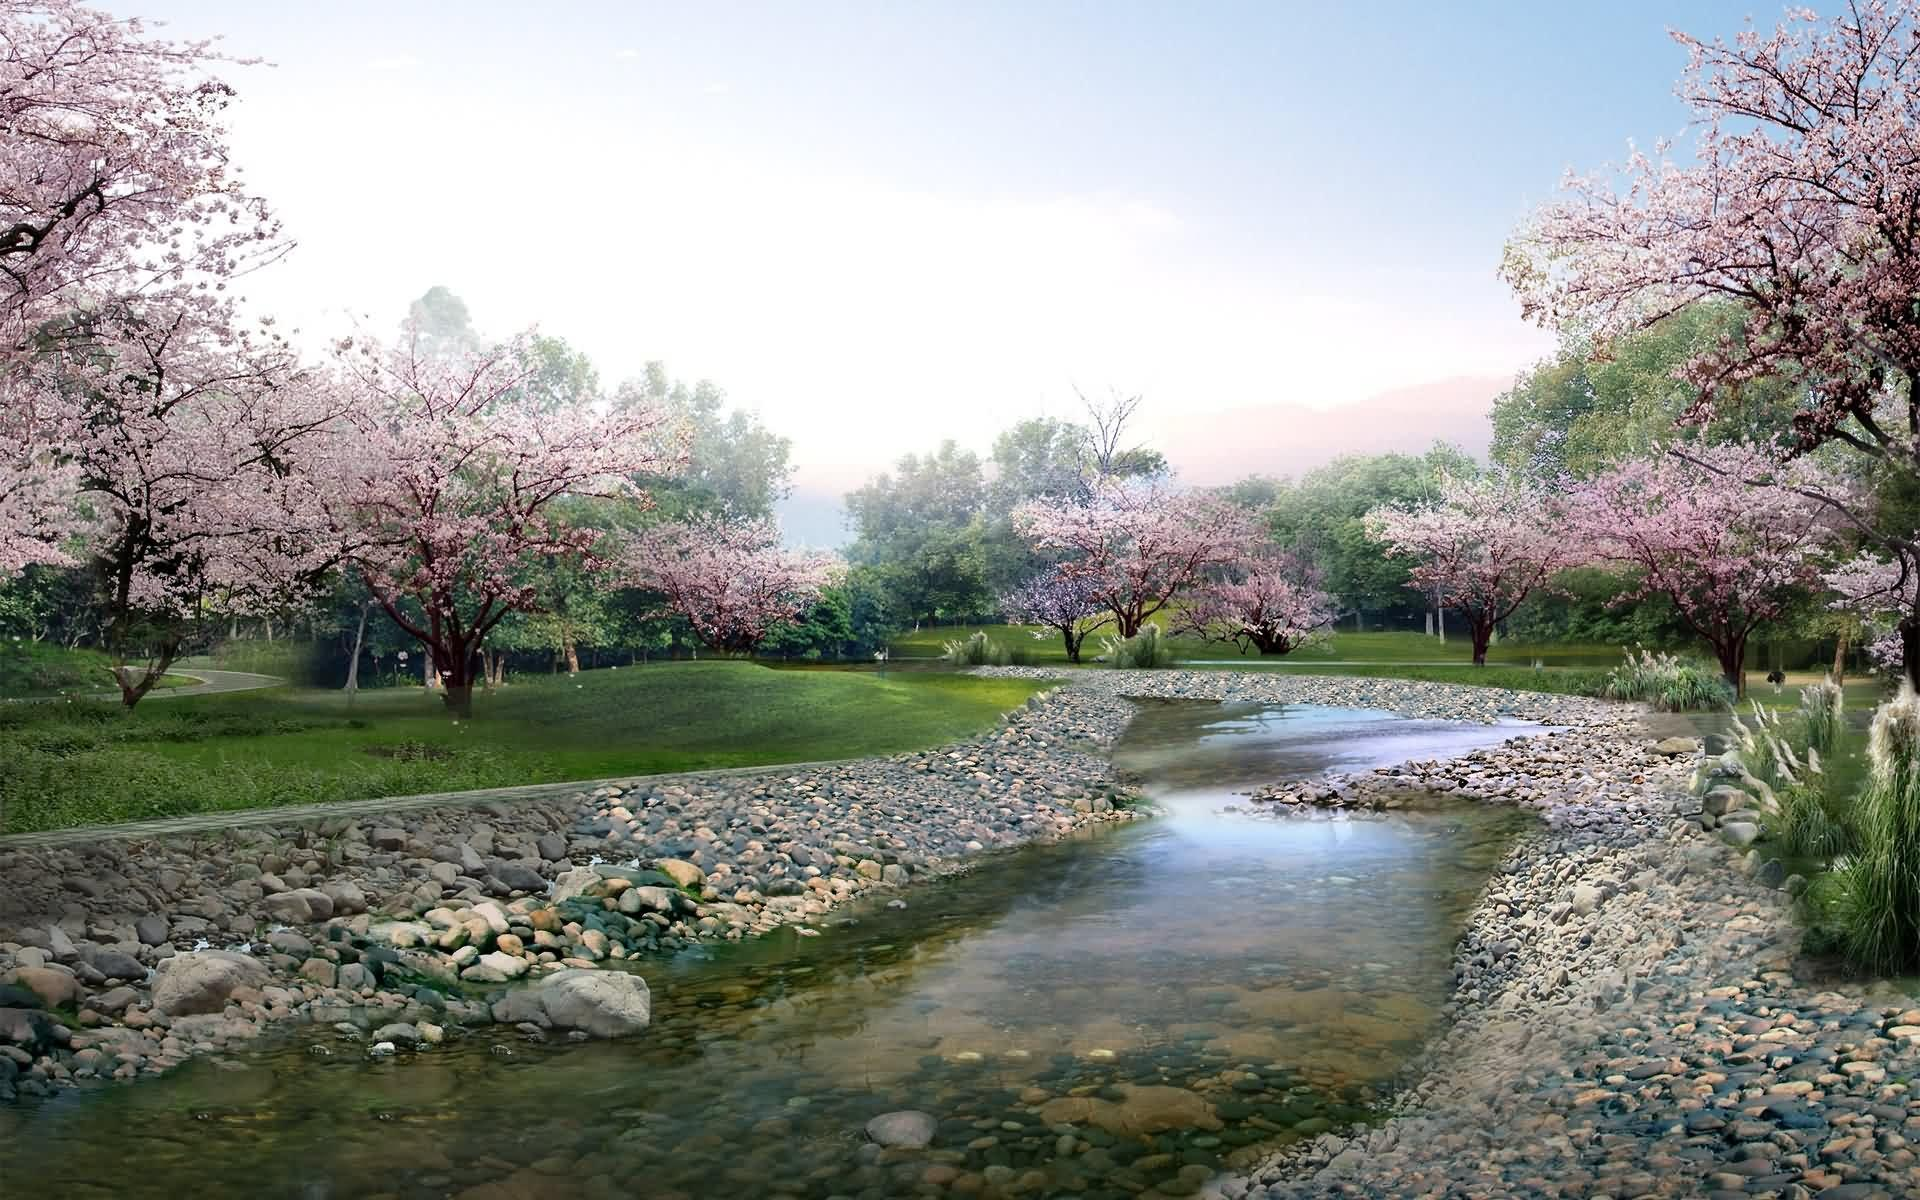 japan garden wallpaper 1920x1200 11567 - | Images And Wallpapers ...